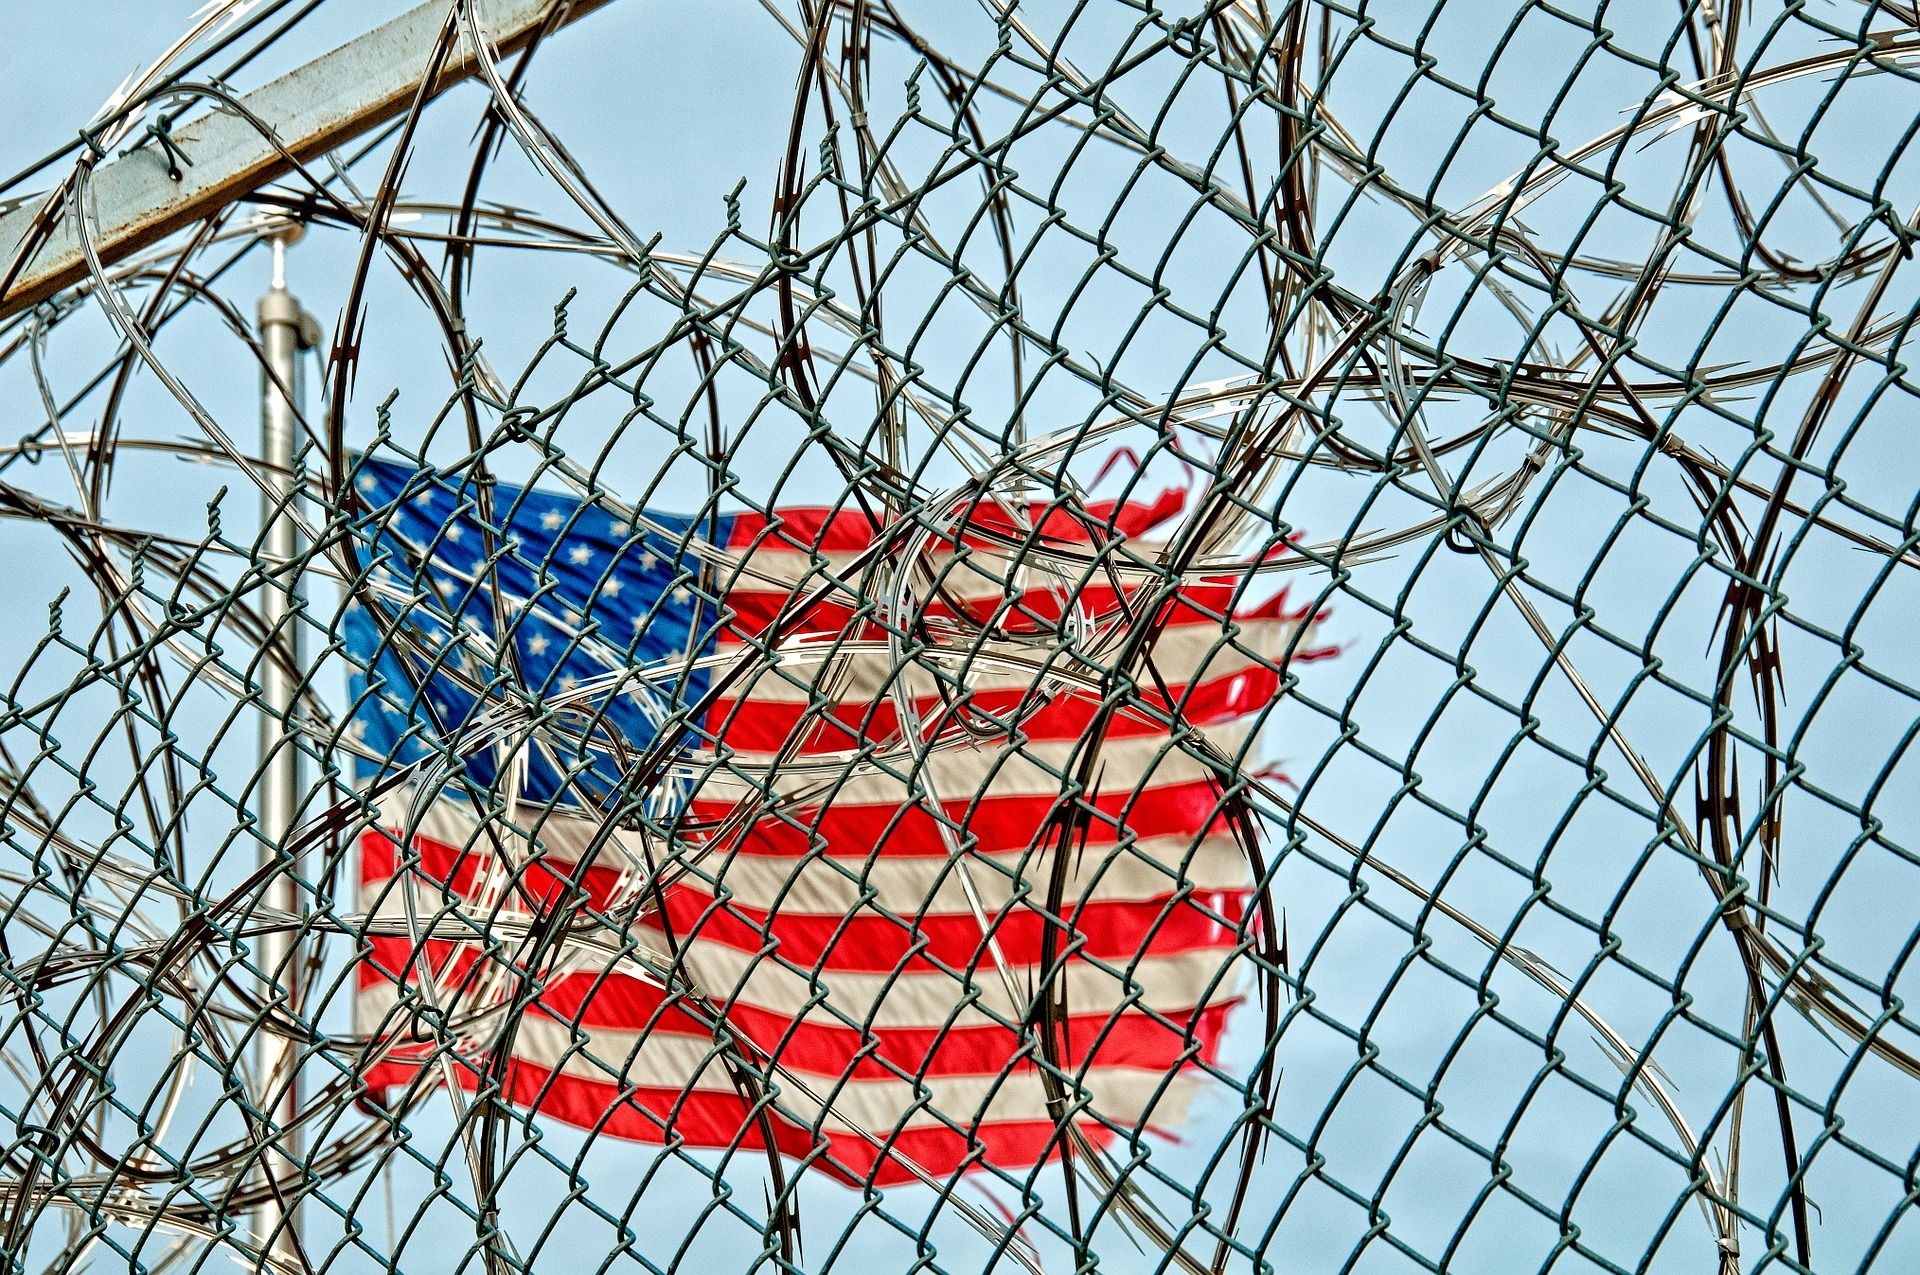 Private Prisons Go Broke and HERO Gets Ripped Off